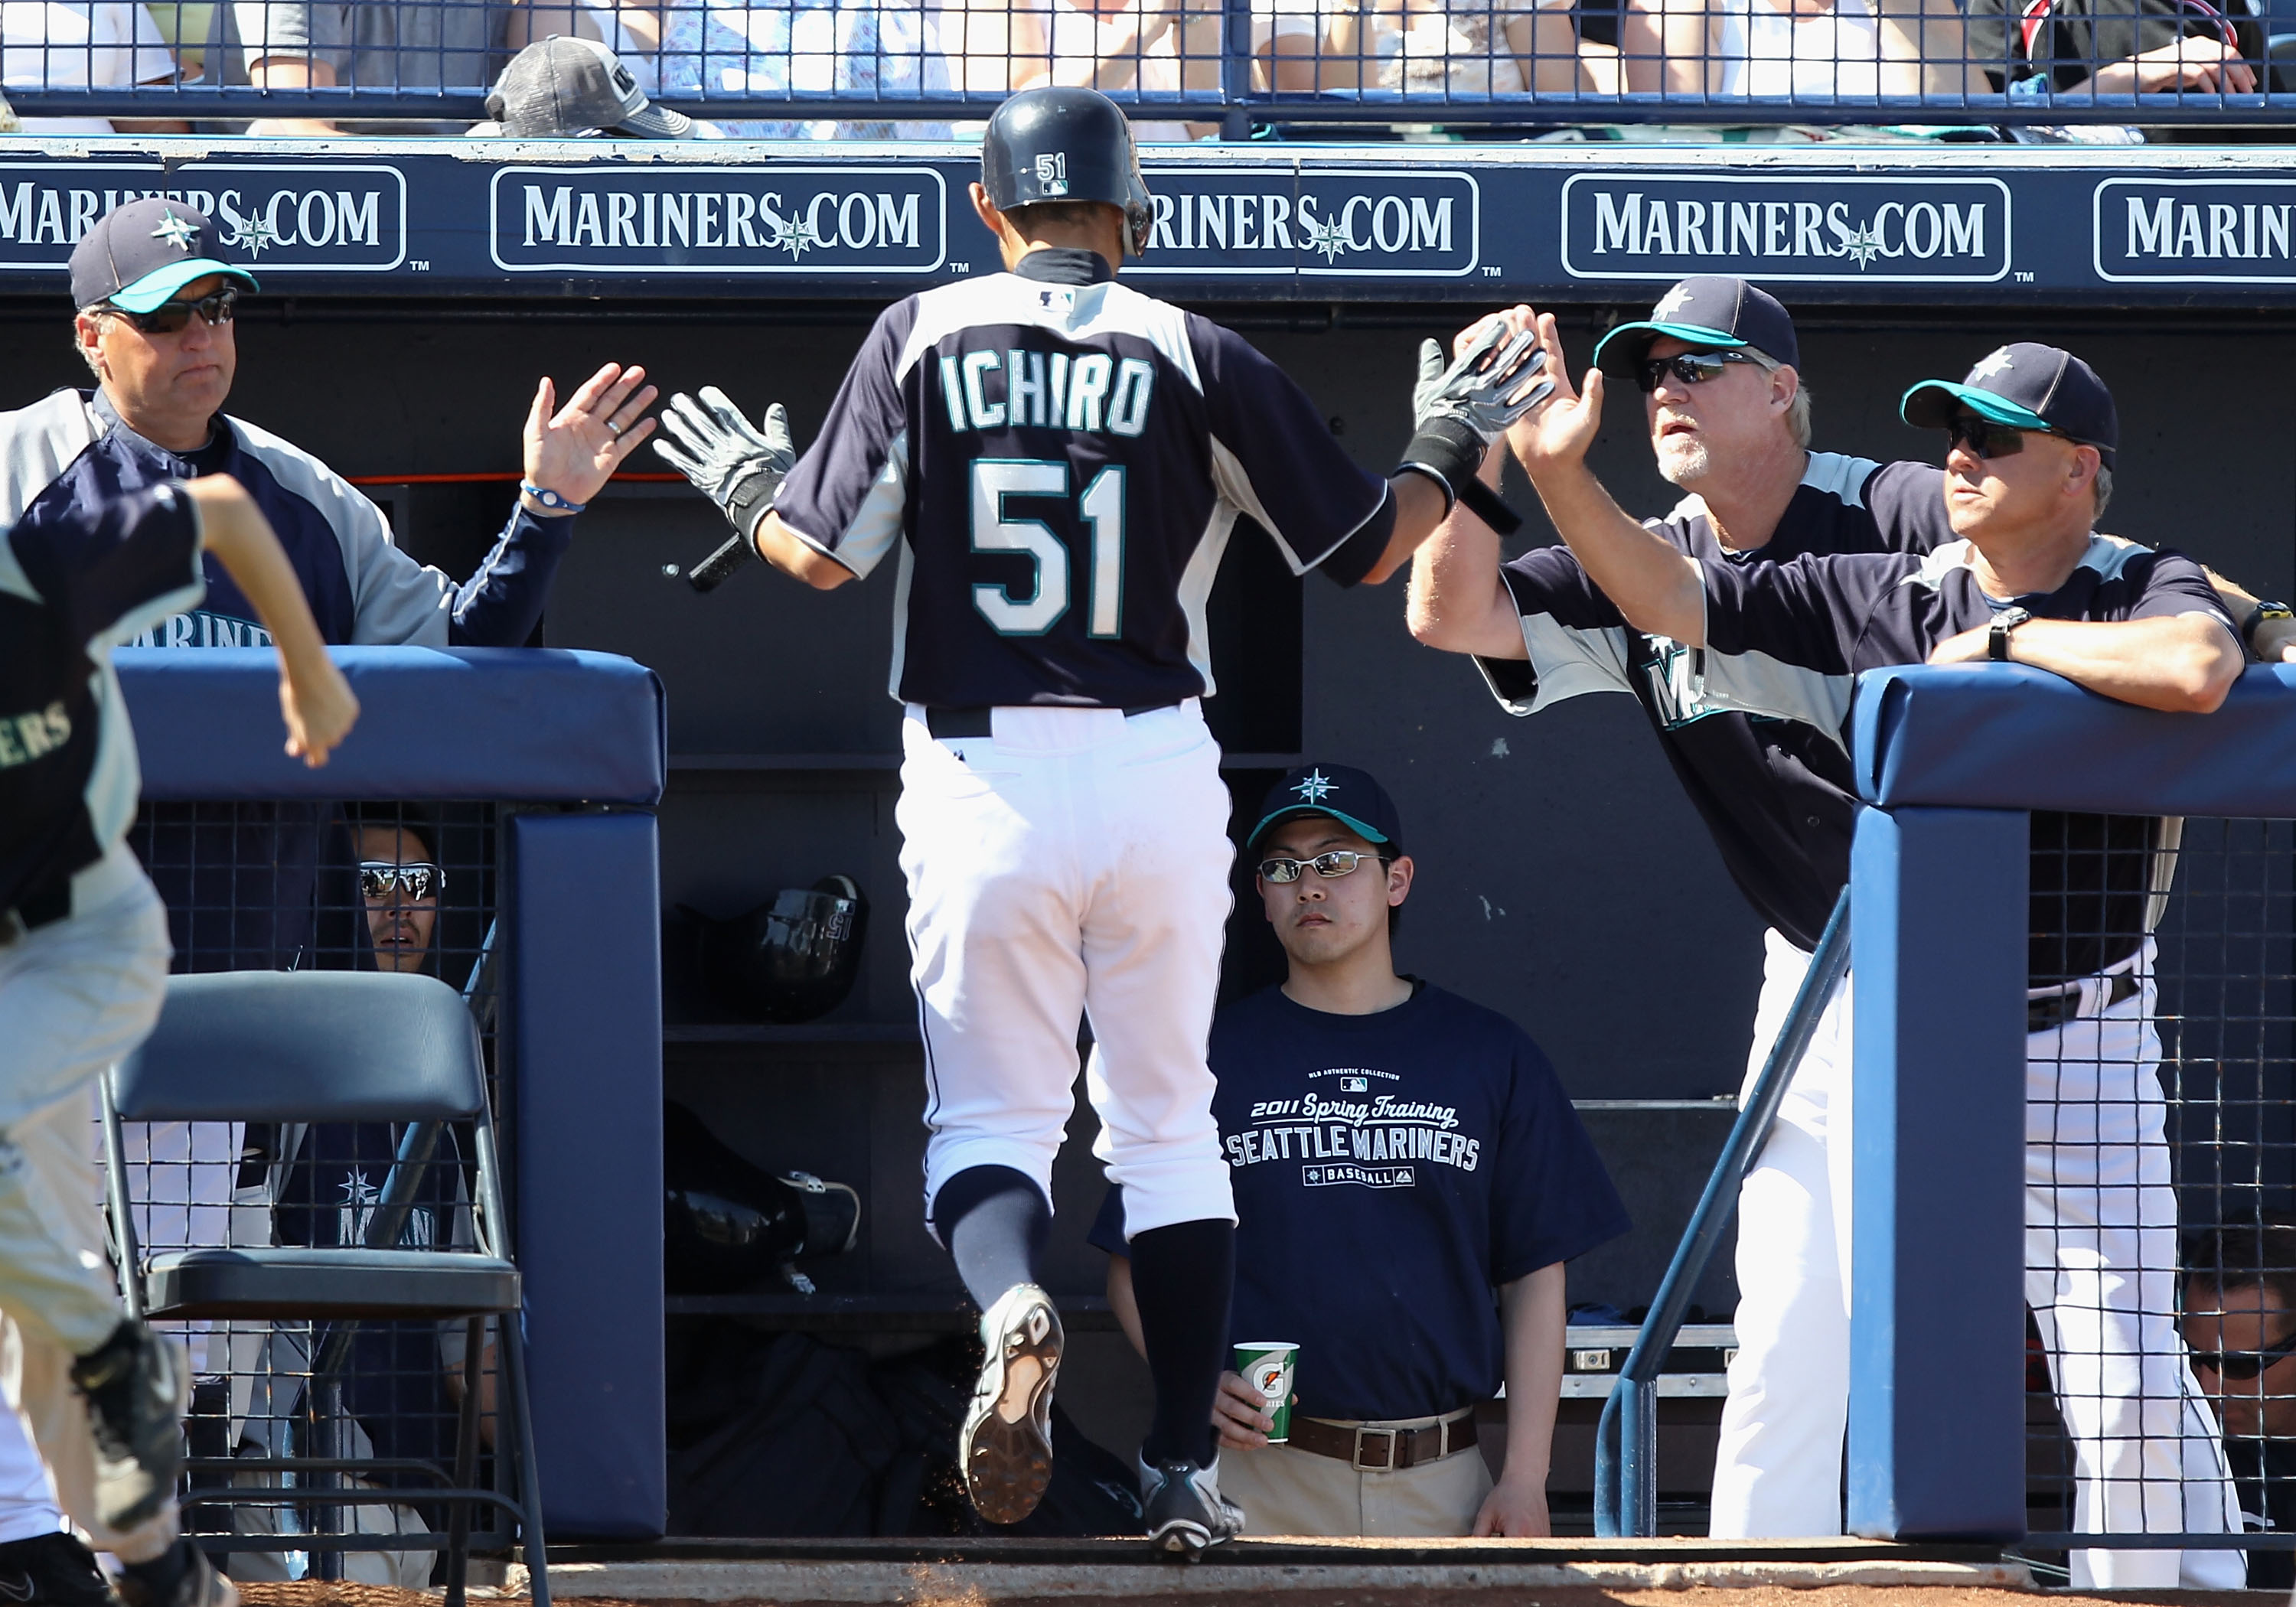 PEORIA, AZ - MARCH 12:  Ichiro Suzuki #51 of the Seattle Mariners high fives teammates after scoring a run against the Oakland Athletics during the second inning of the spring training game at Peoria Stadium on March 12, 2011 in Peoria, Arizona.  (Photo b